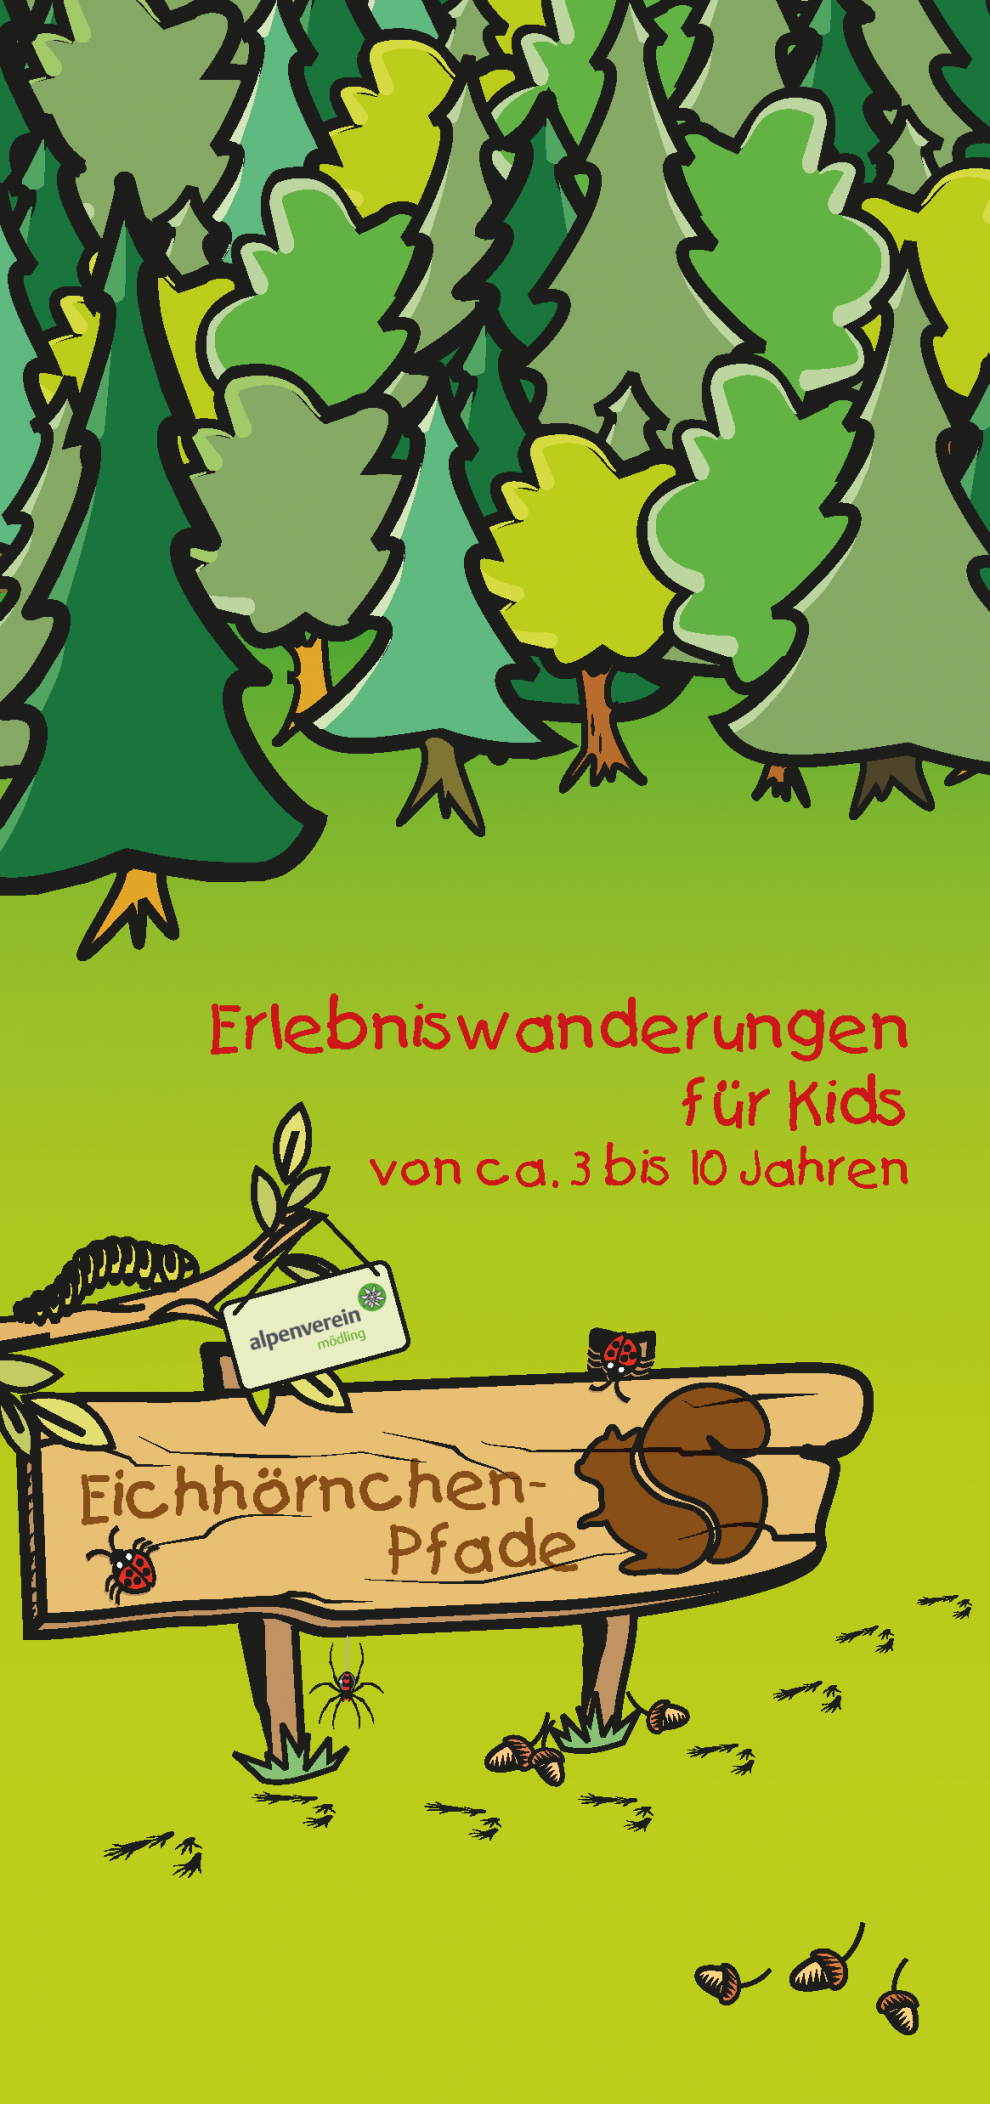 Eichhörnchpfade Folder Cover